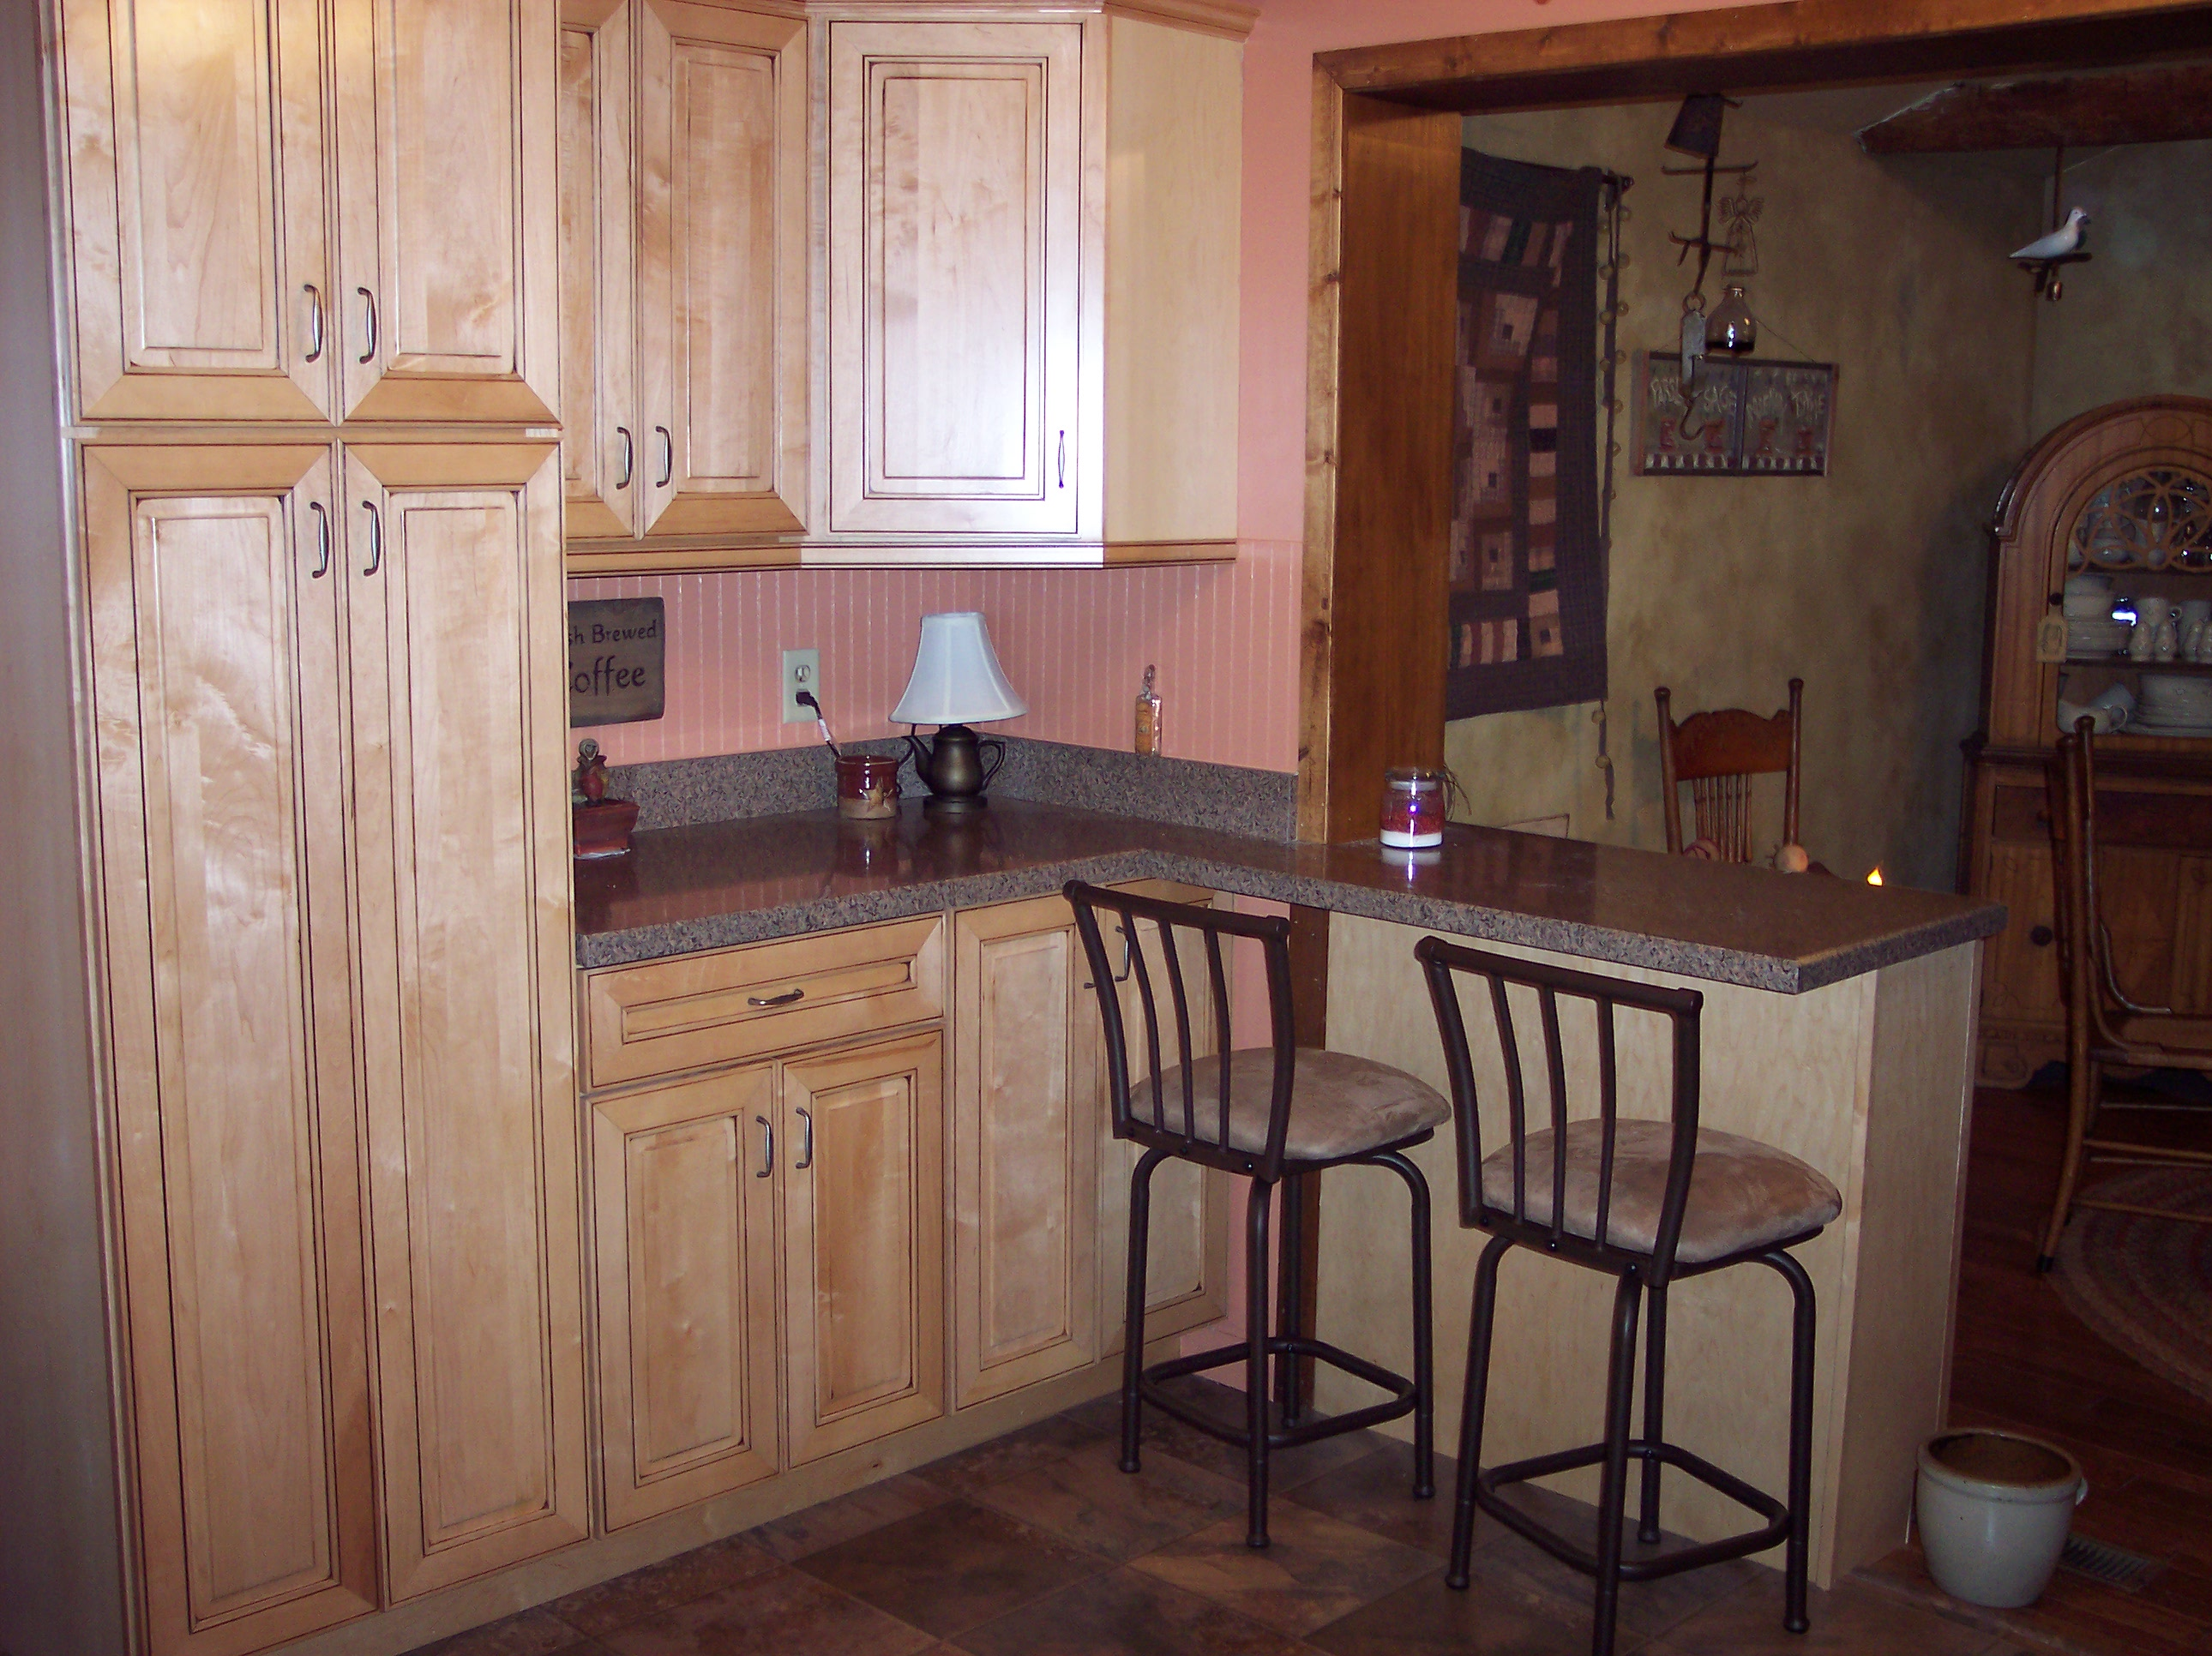 Kitchen Trends for 2012 - Lancaster PA Remodeling Tips ...